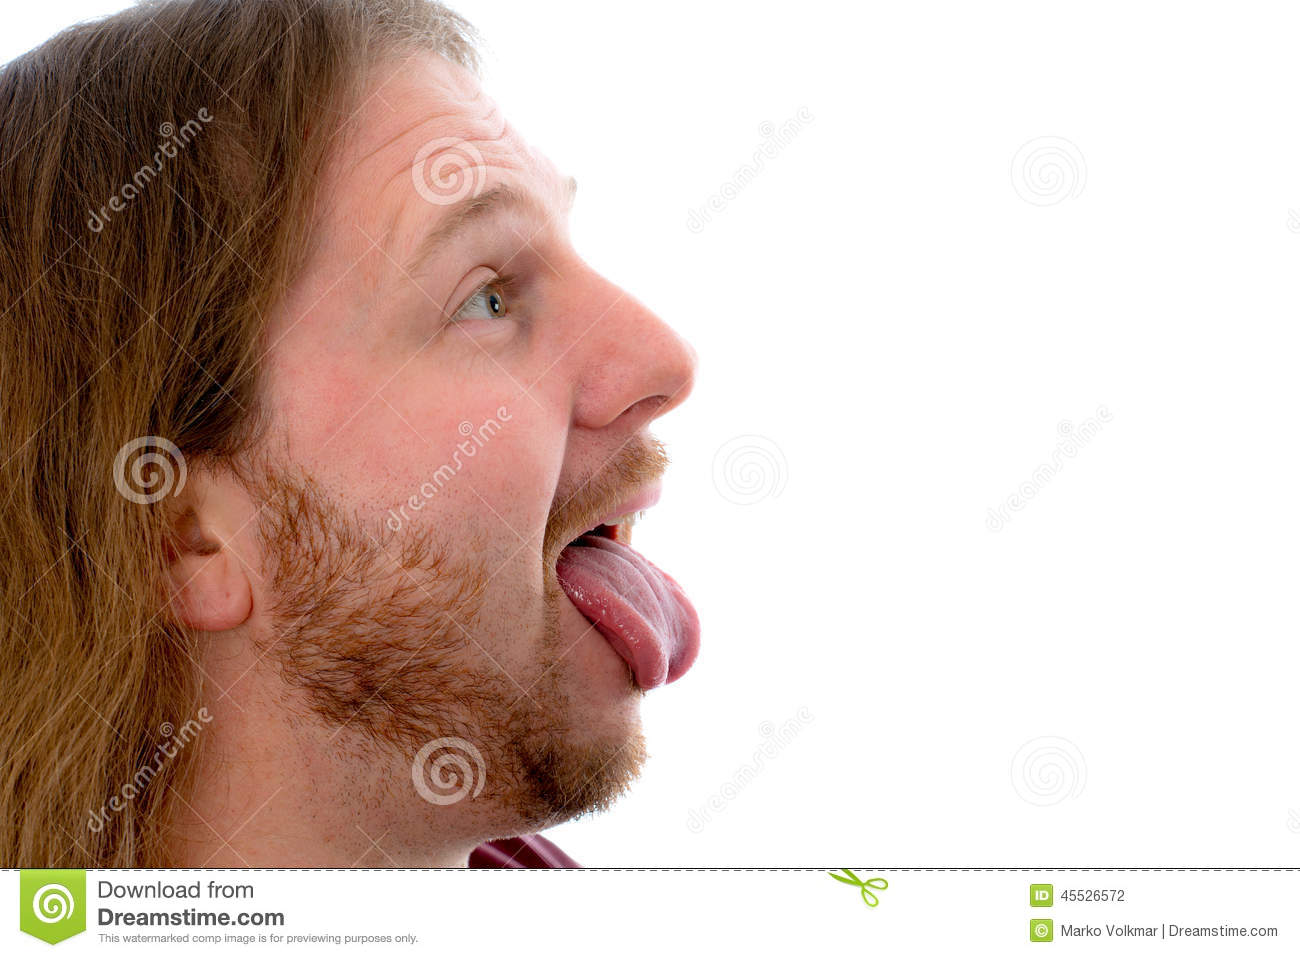 Man stick out the tongue stock photo. Image of beard